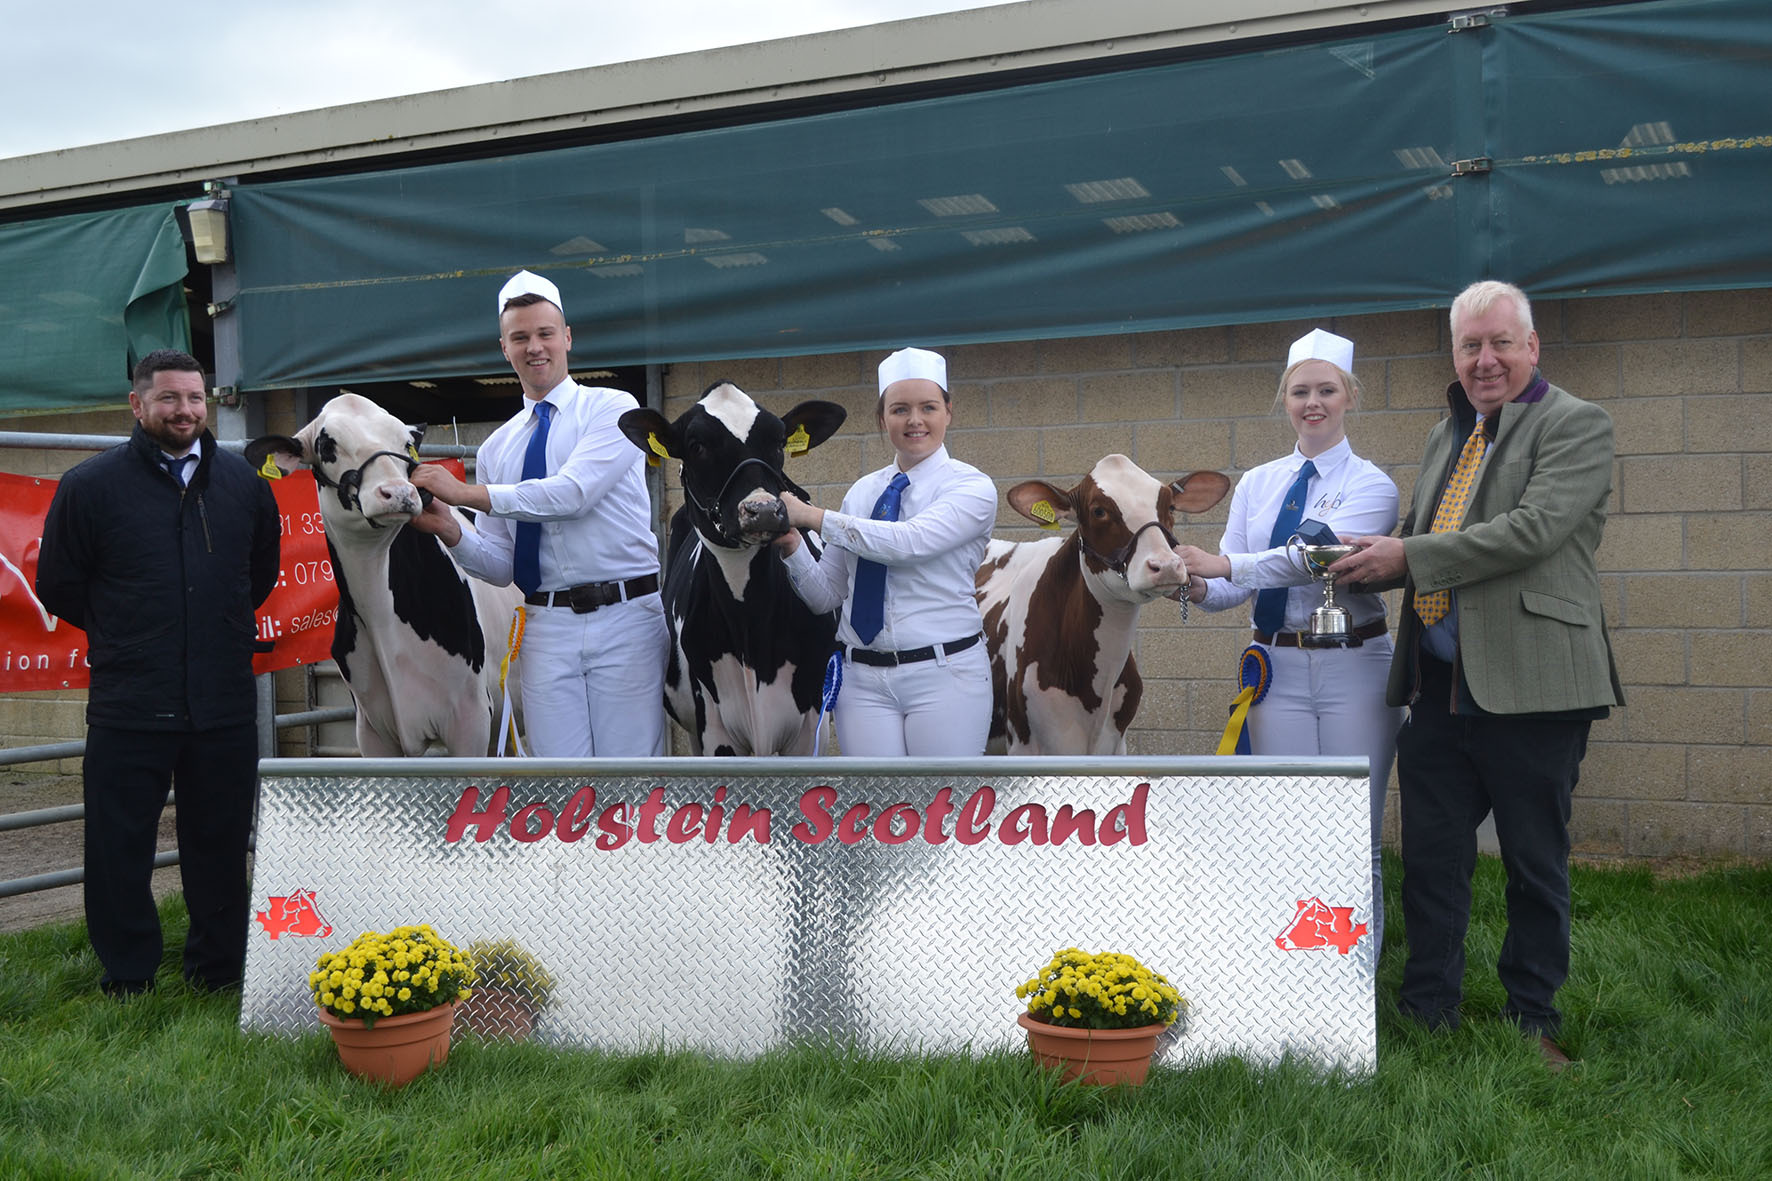 Calf winners from left judge Steve McLoughlan, Neil Sloan, Zoe Bryson, Alison Hunter and sponsor Archie Leitch